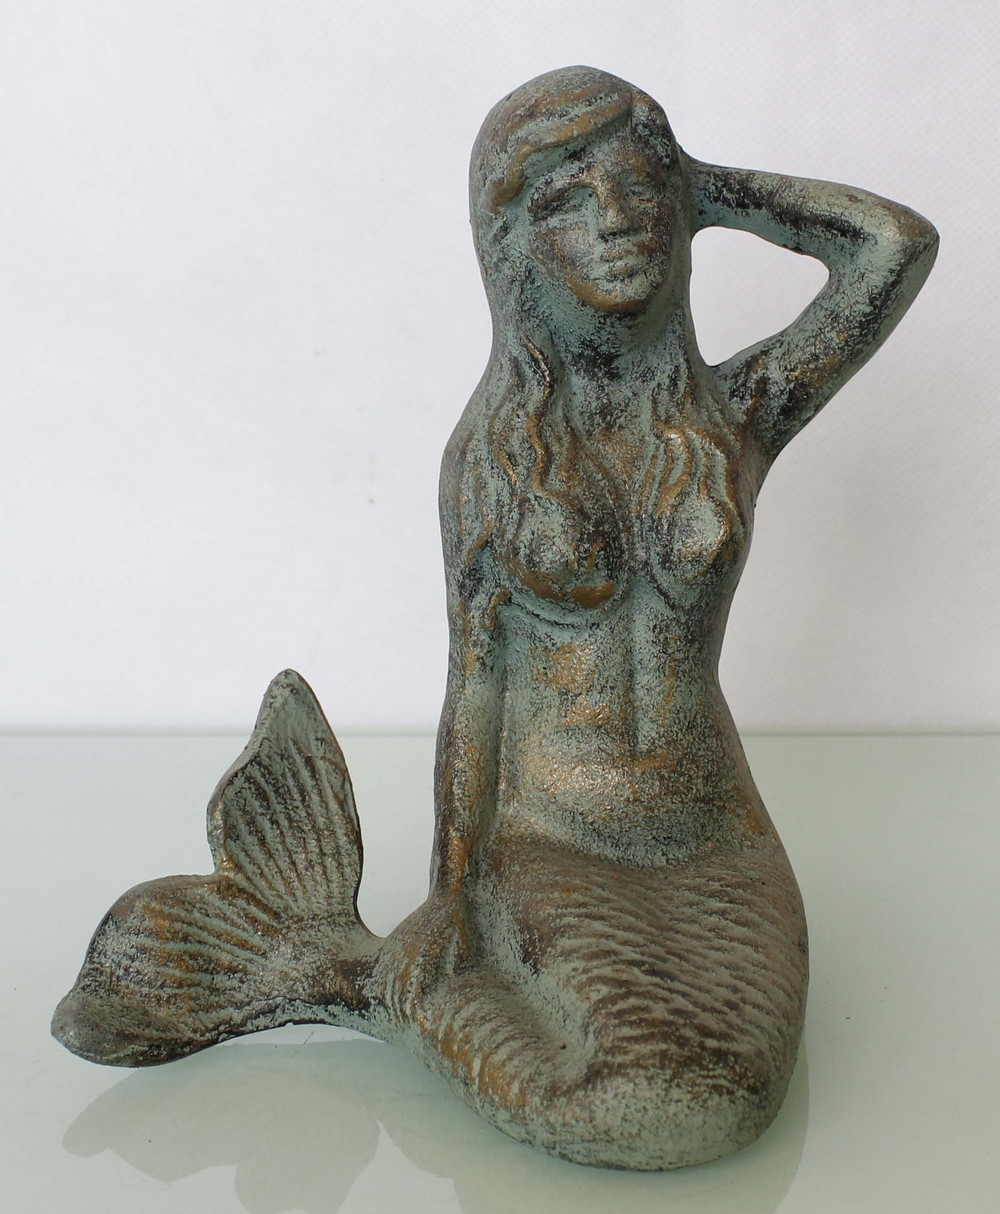 Cast Iron Mermaid Sculpture For Home Decoration